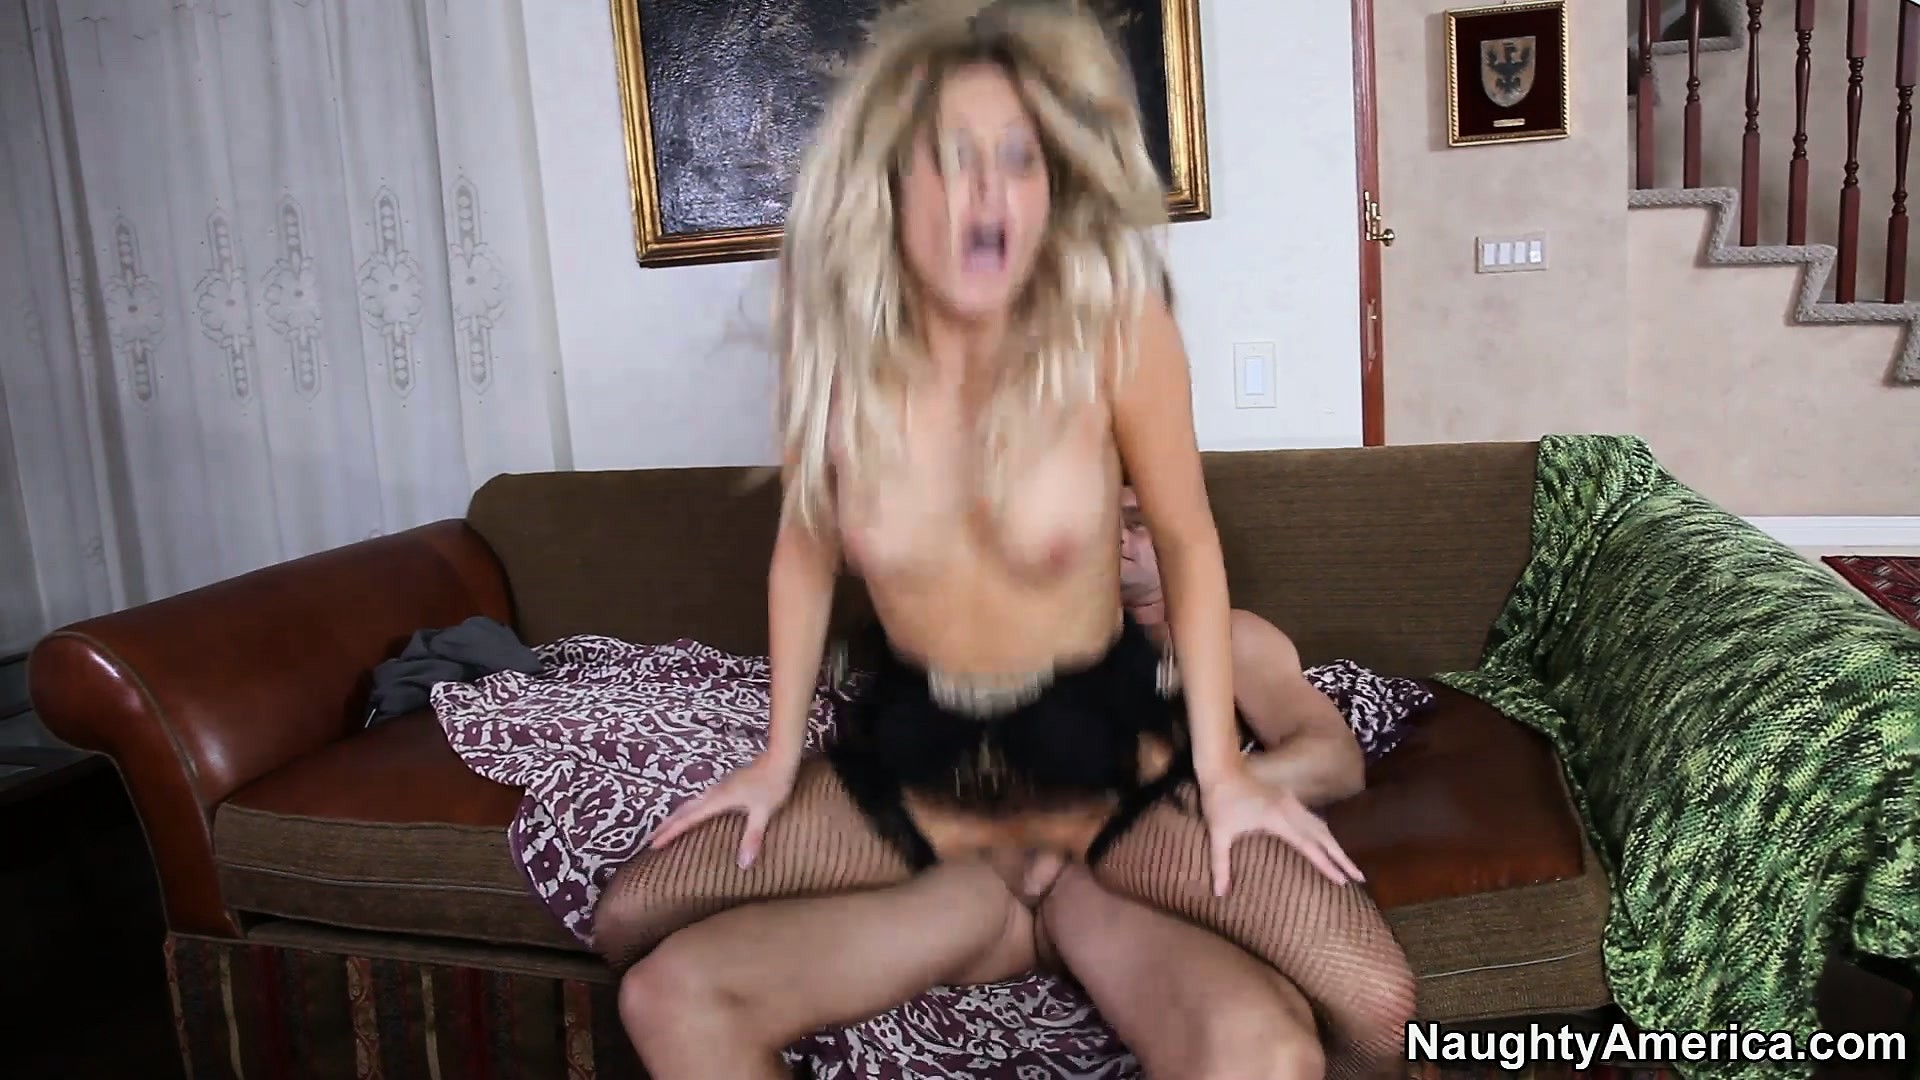 Porn Tube of The Hot Blonde Rides That Dick With Passion Before Getting Fucked Doggy Style